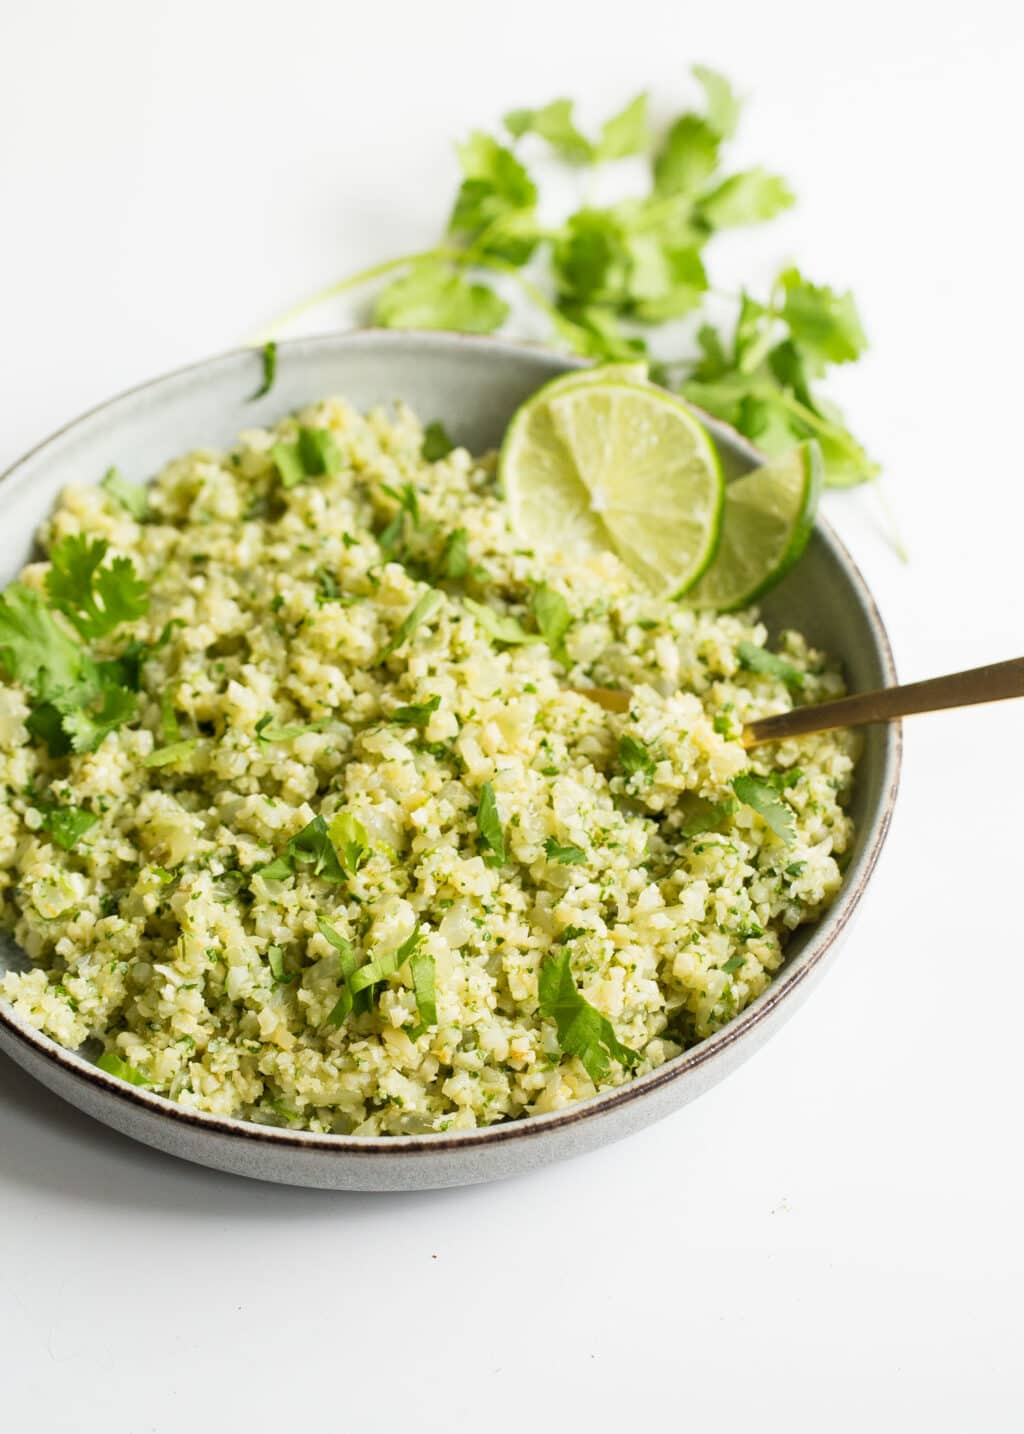 cauliflower rice with lime and cilantro in a bowl.